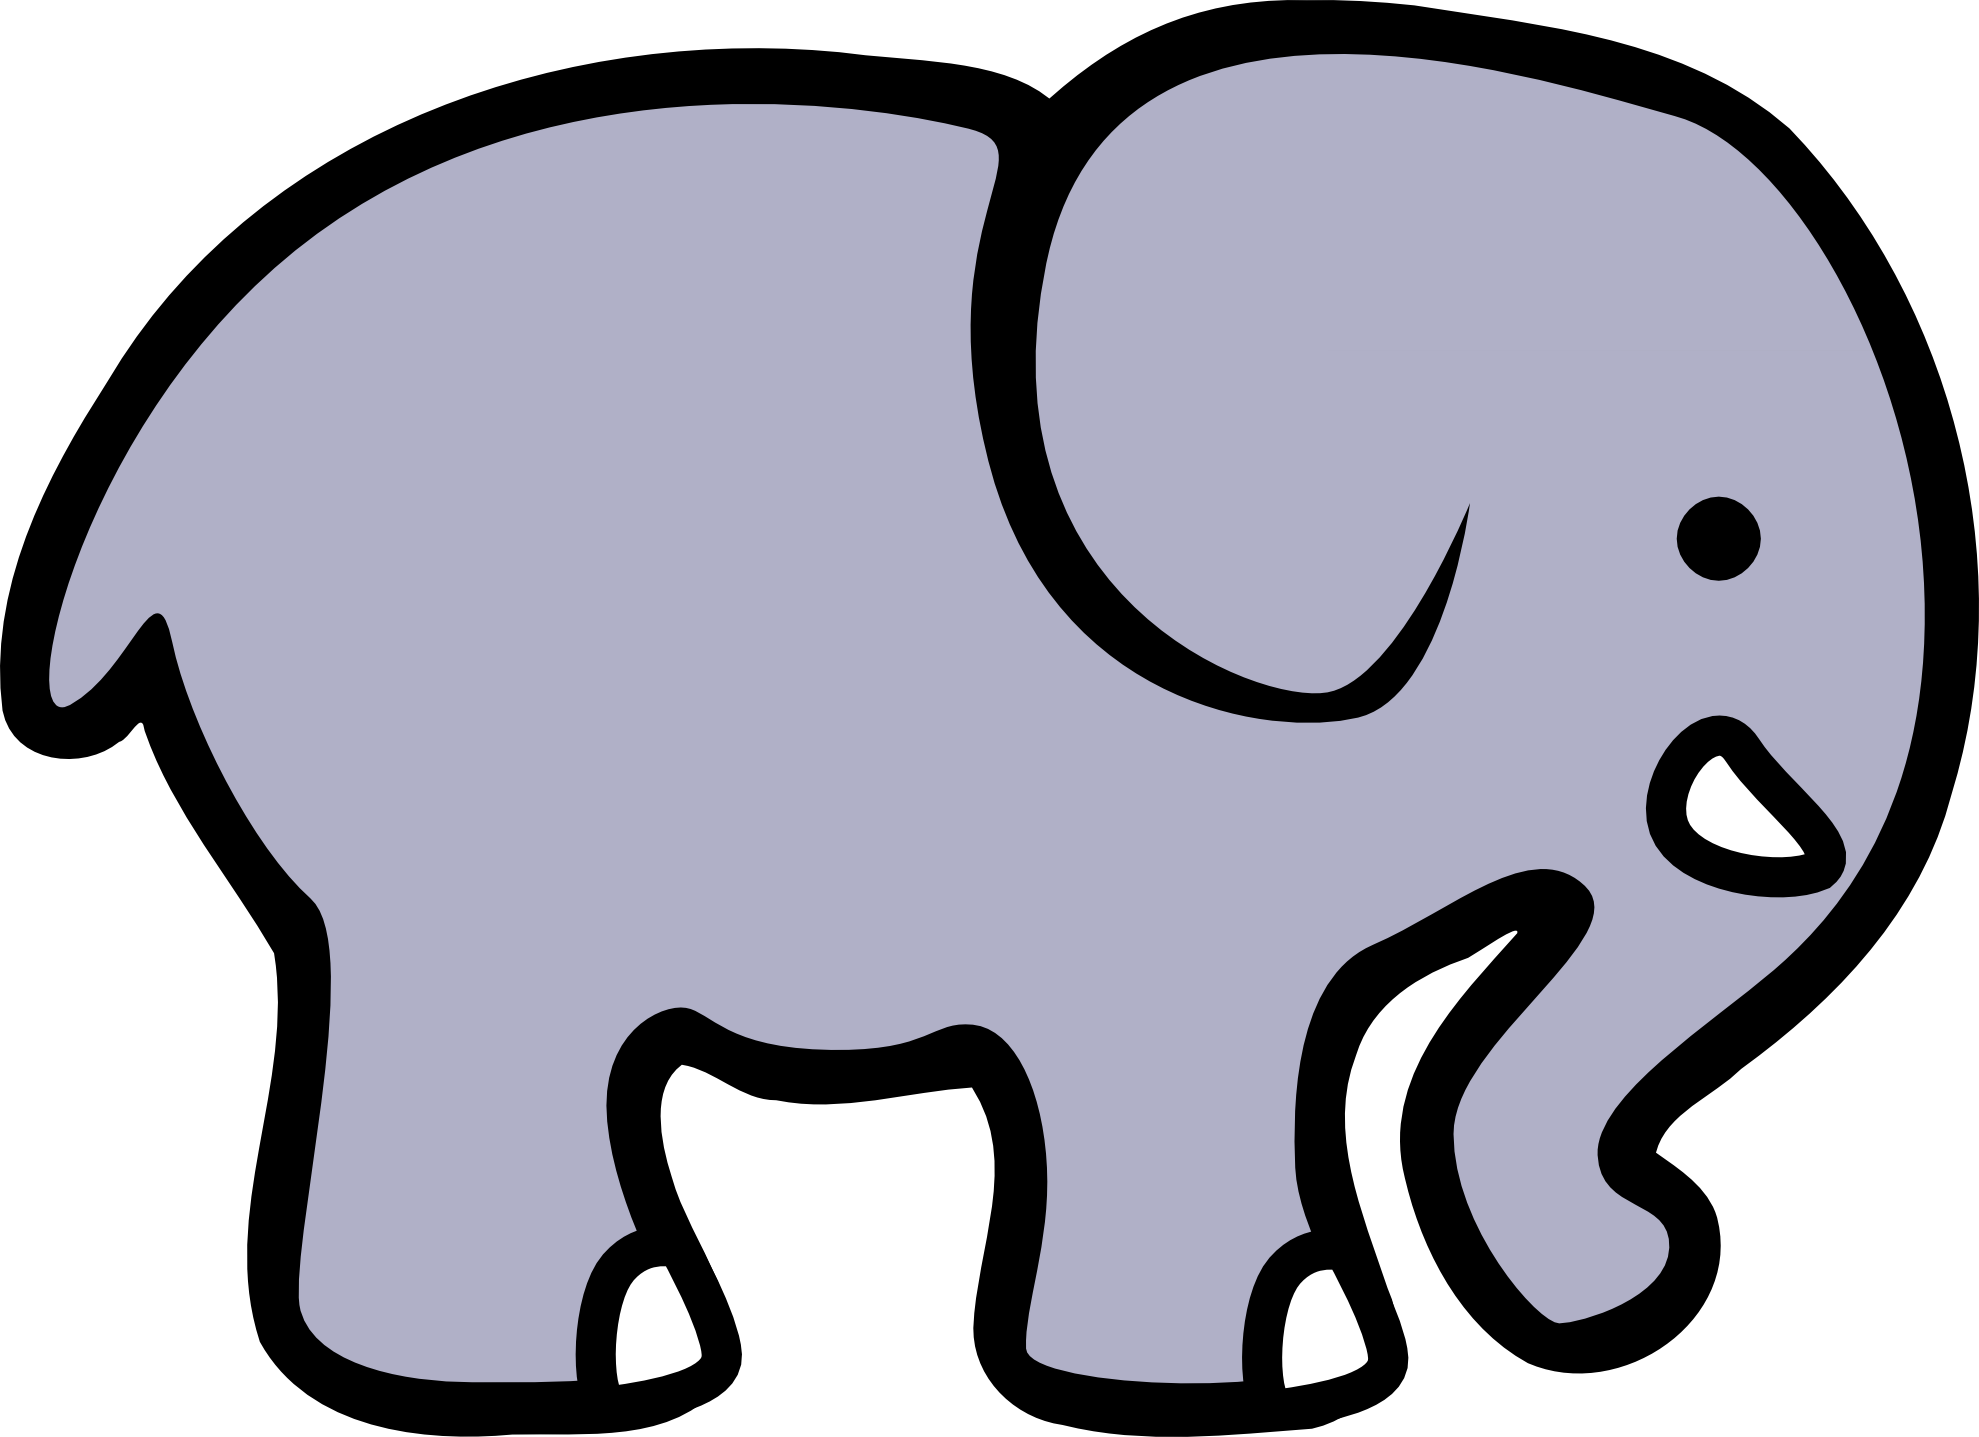 Elephant Clipart Black And White-elephant clipart black and white-6